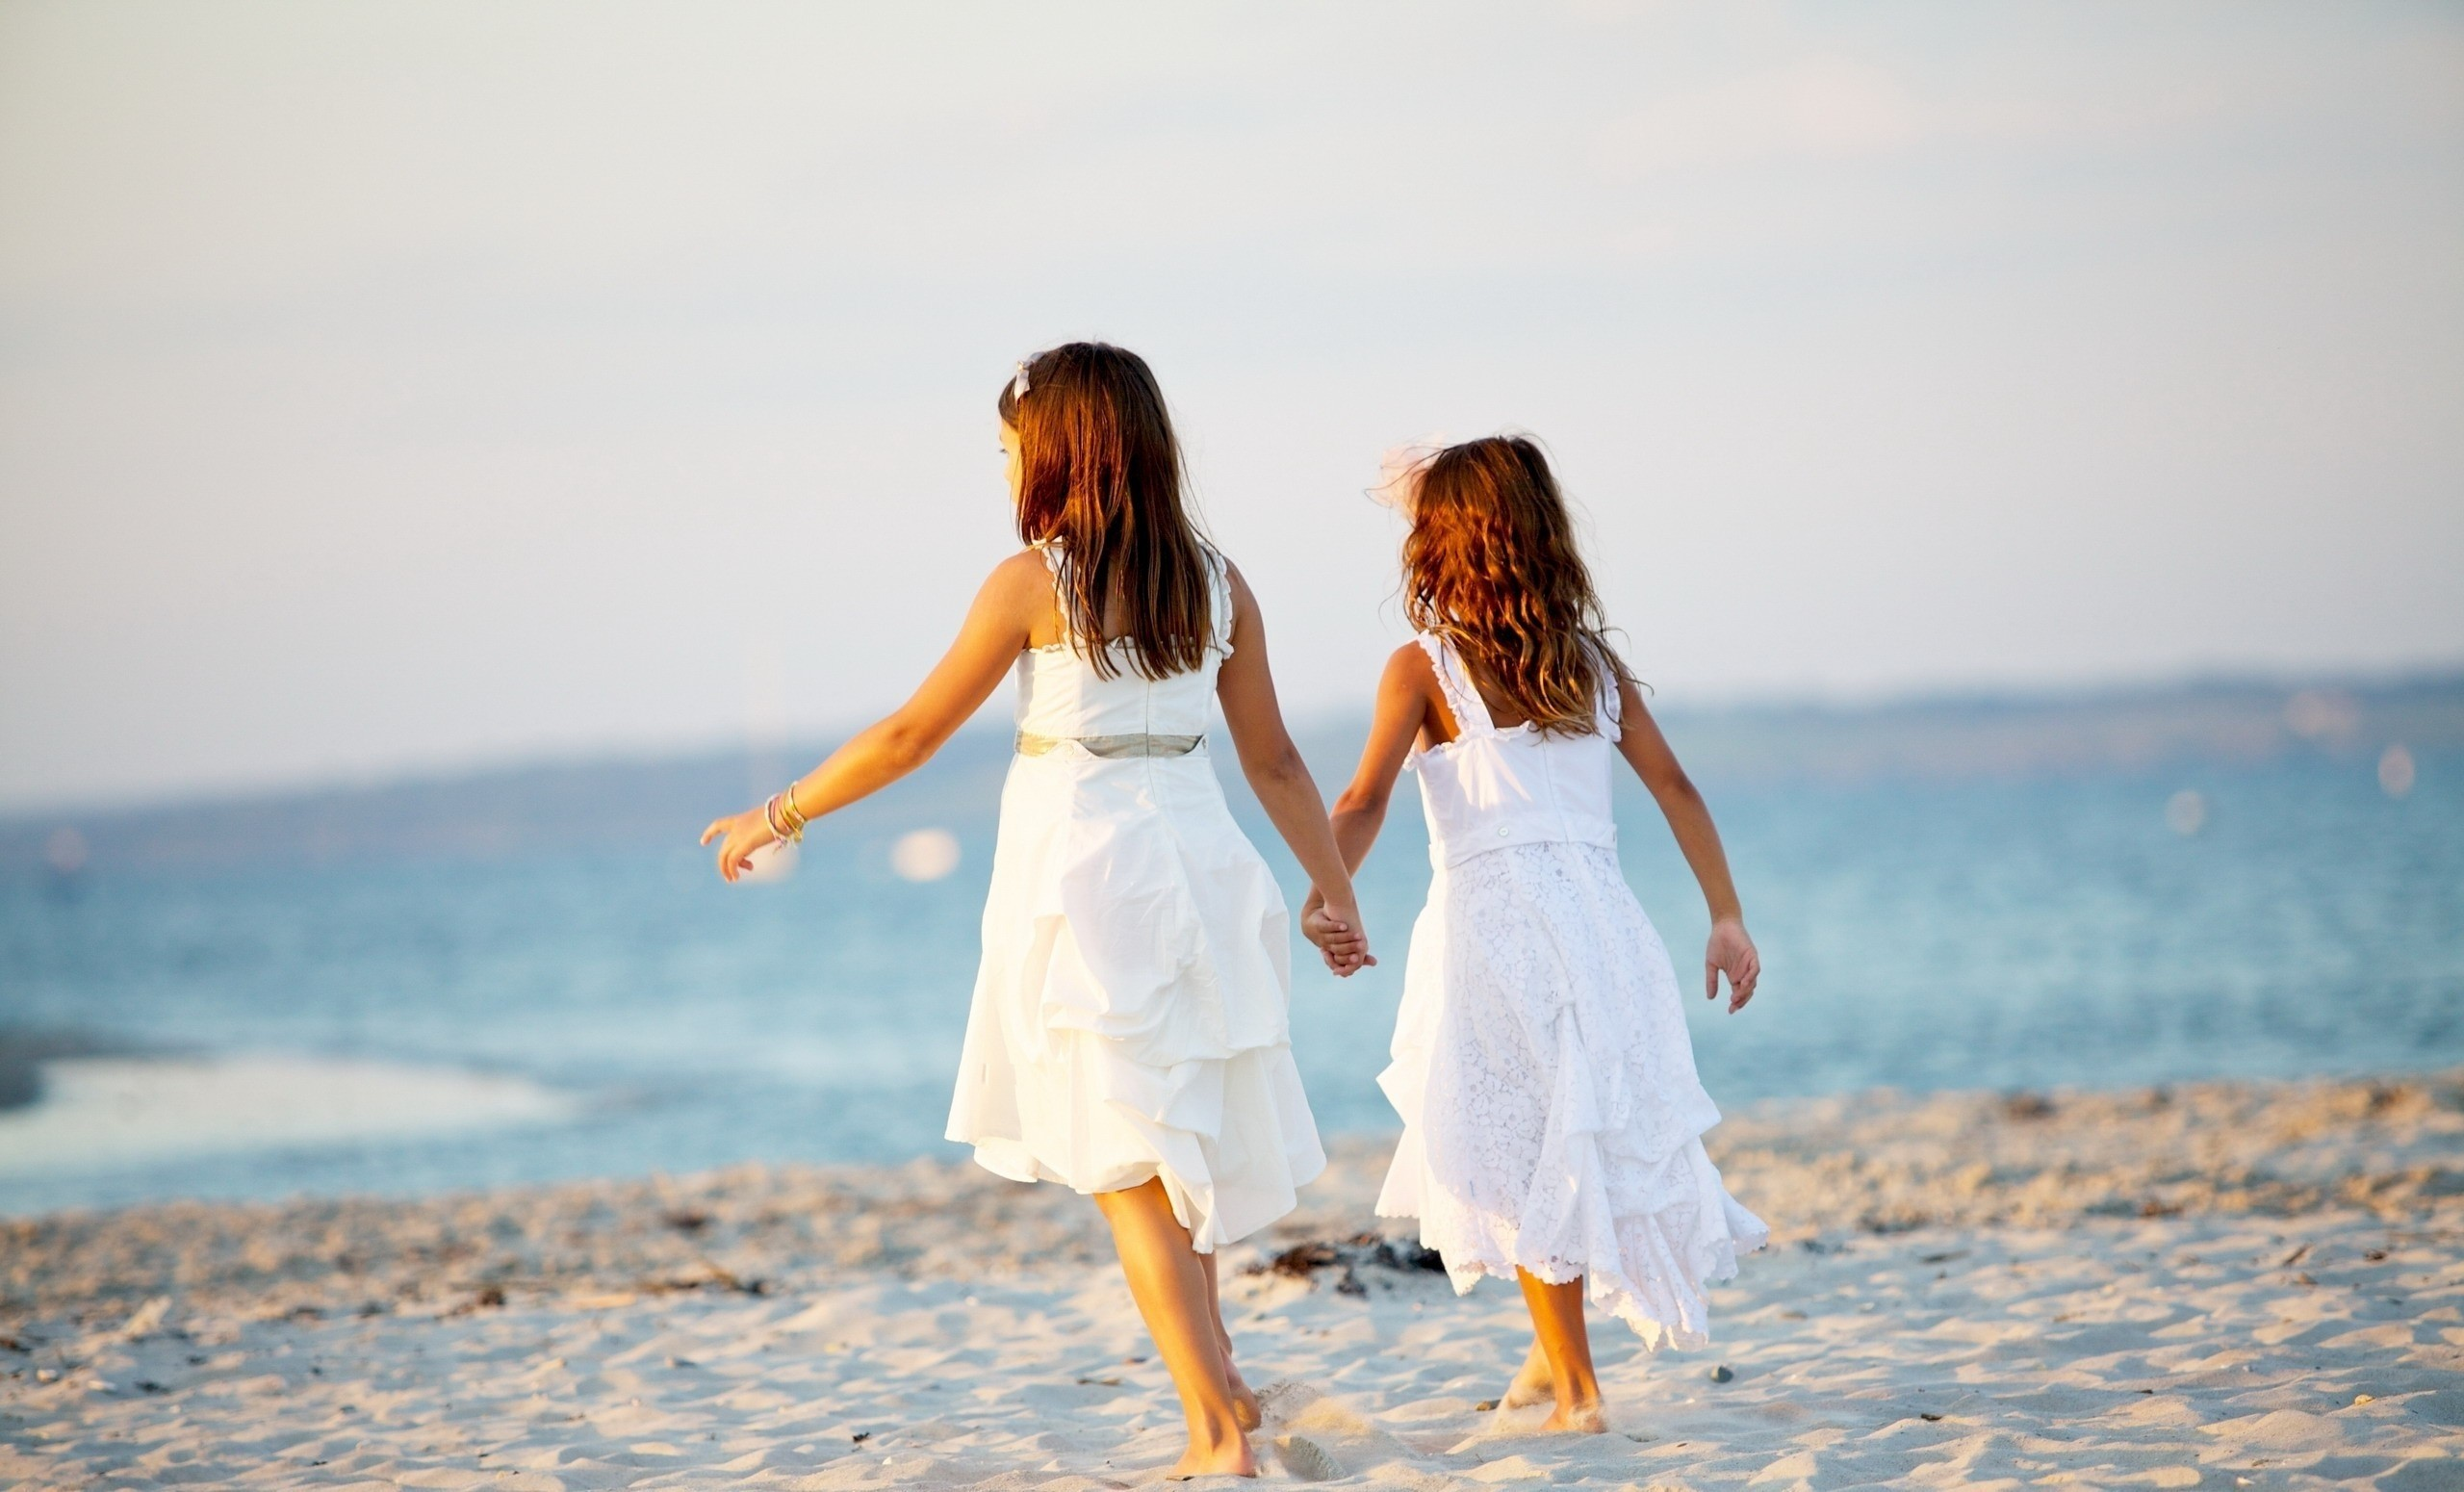 110524 download wallpaper Miscellanea, Miscellaneous, Girls, Children, Shore, Bank, Ocean, Sea screensavers and pictures for free